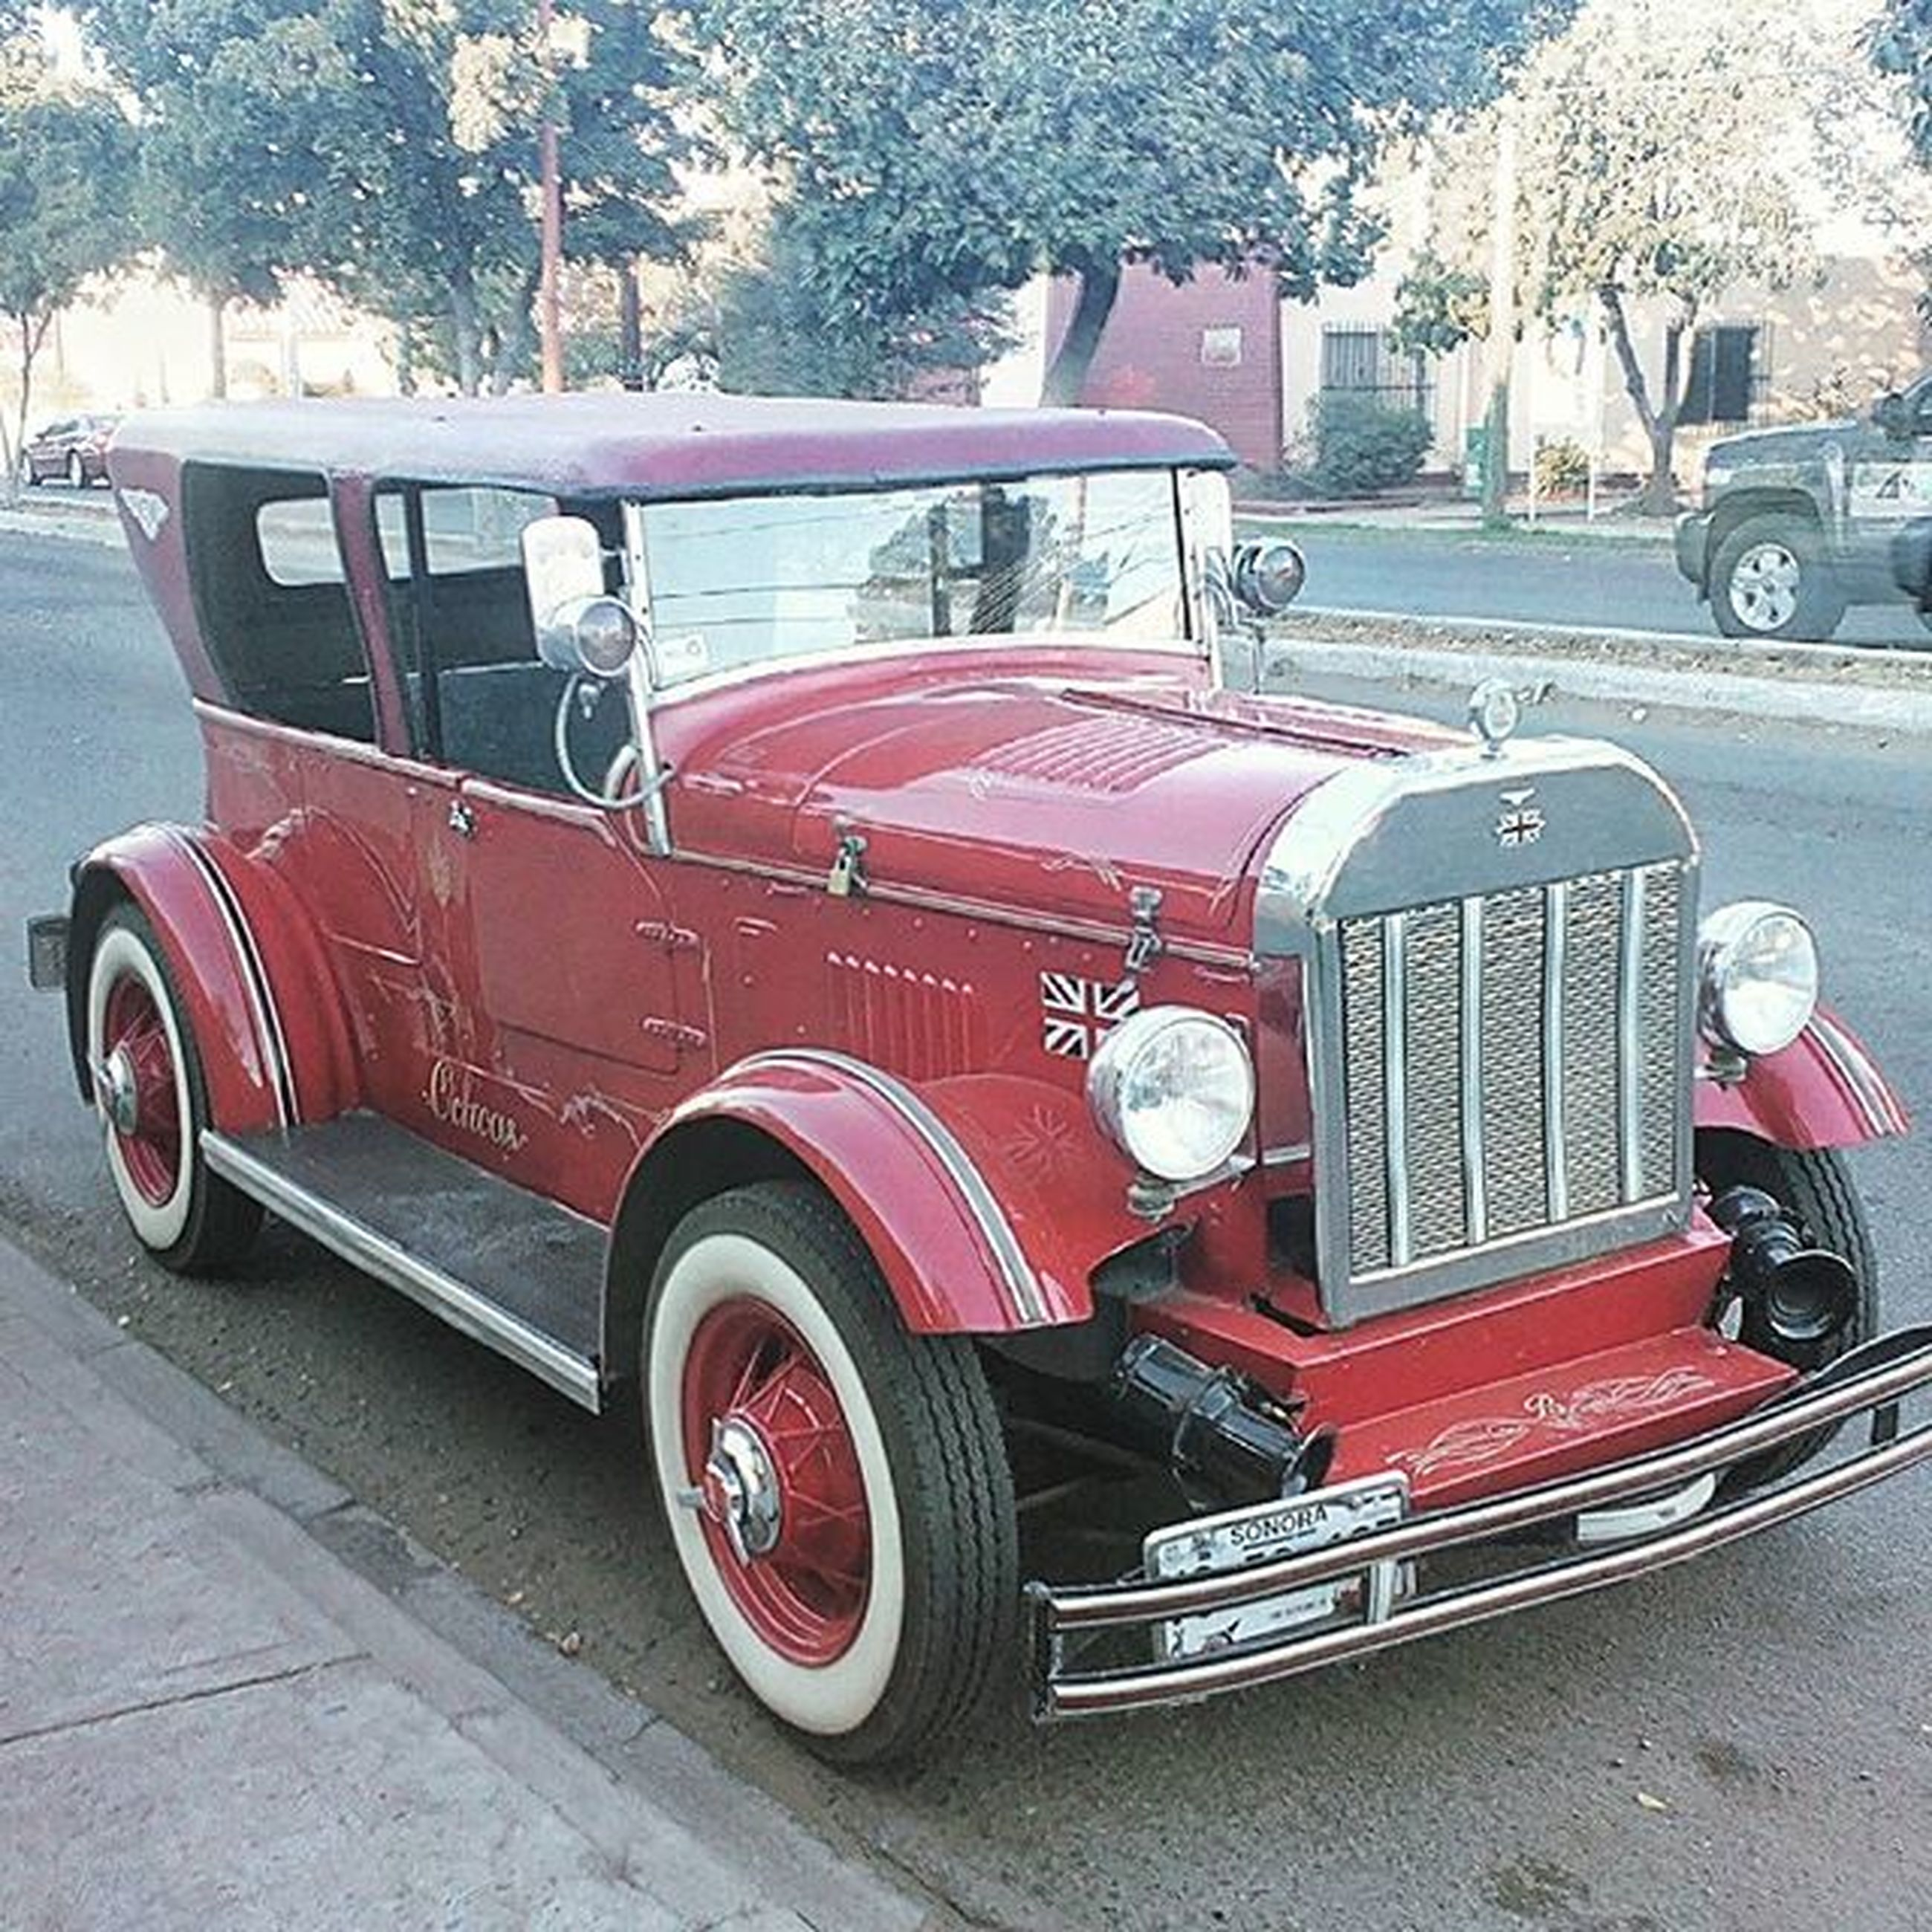 land vehicle, transportation, car, mode of transport, street, stationary, road, red, travel, parked, day, parking, vintage car, outdoors, truck, building exterior, old-fashioned, retro styled, tree, vehicle